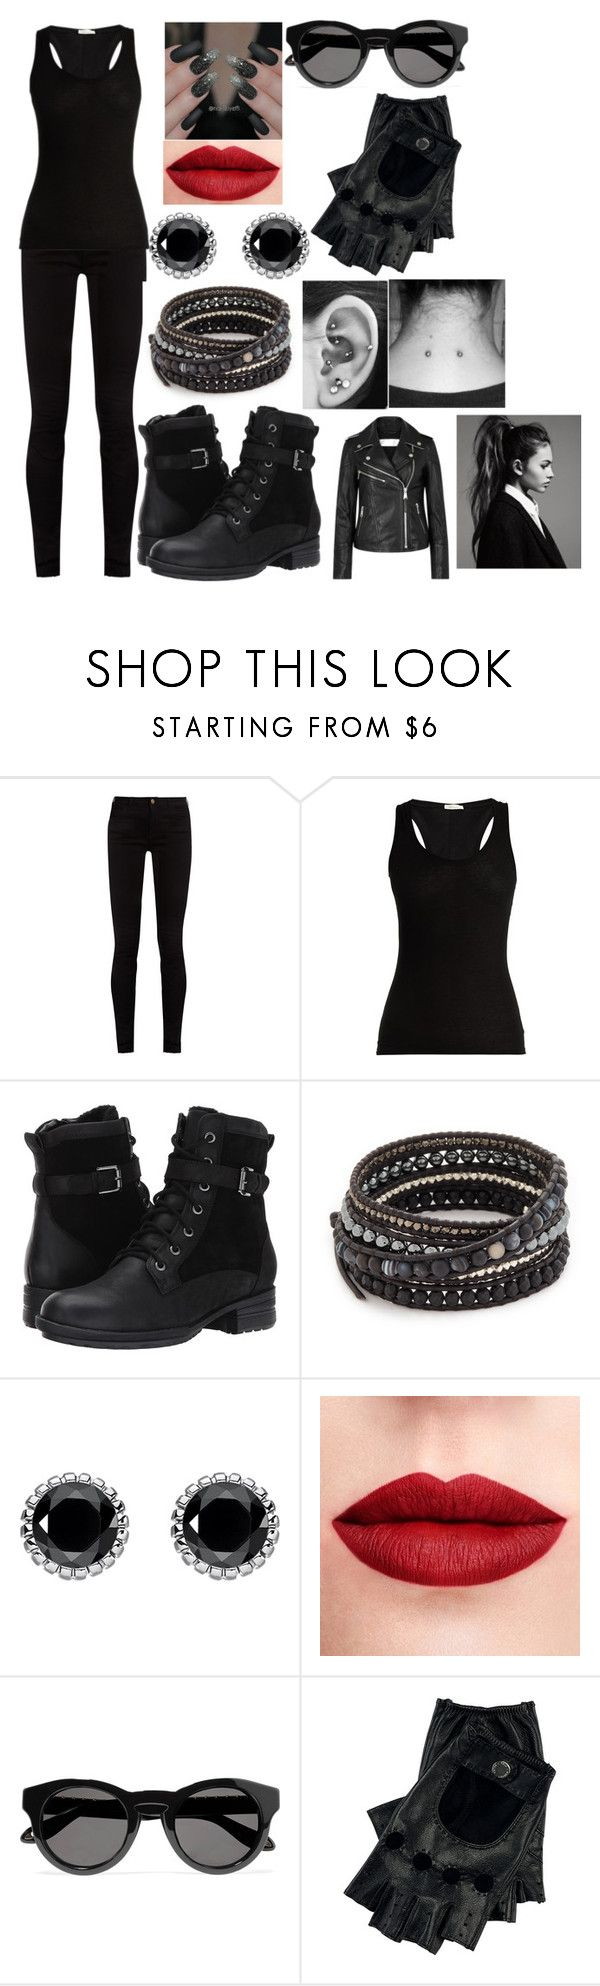 """""""The Divergent: Dauntless"""" by kiara-fleming ❤ liked on Polyvore featuring Gucci, Skin, Blondo, Chan Luu, Thomas Sabo, Givenchy and Victoria, Victoria Beckham"""